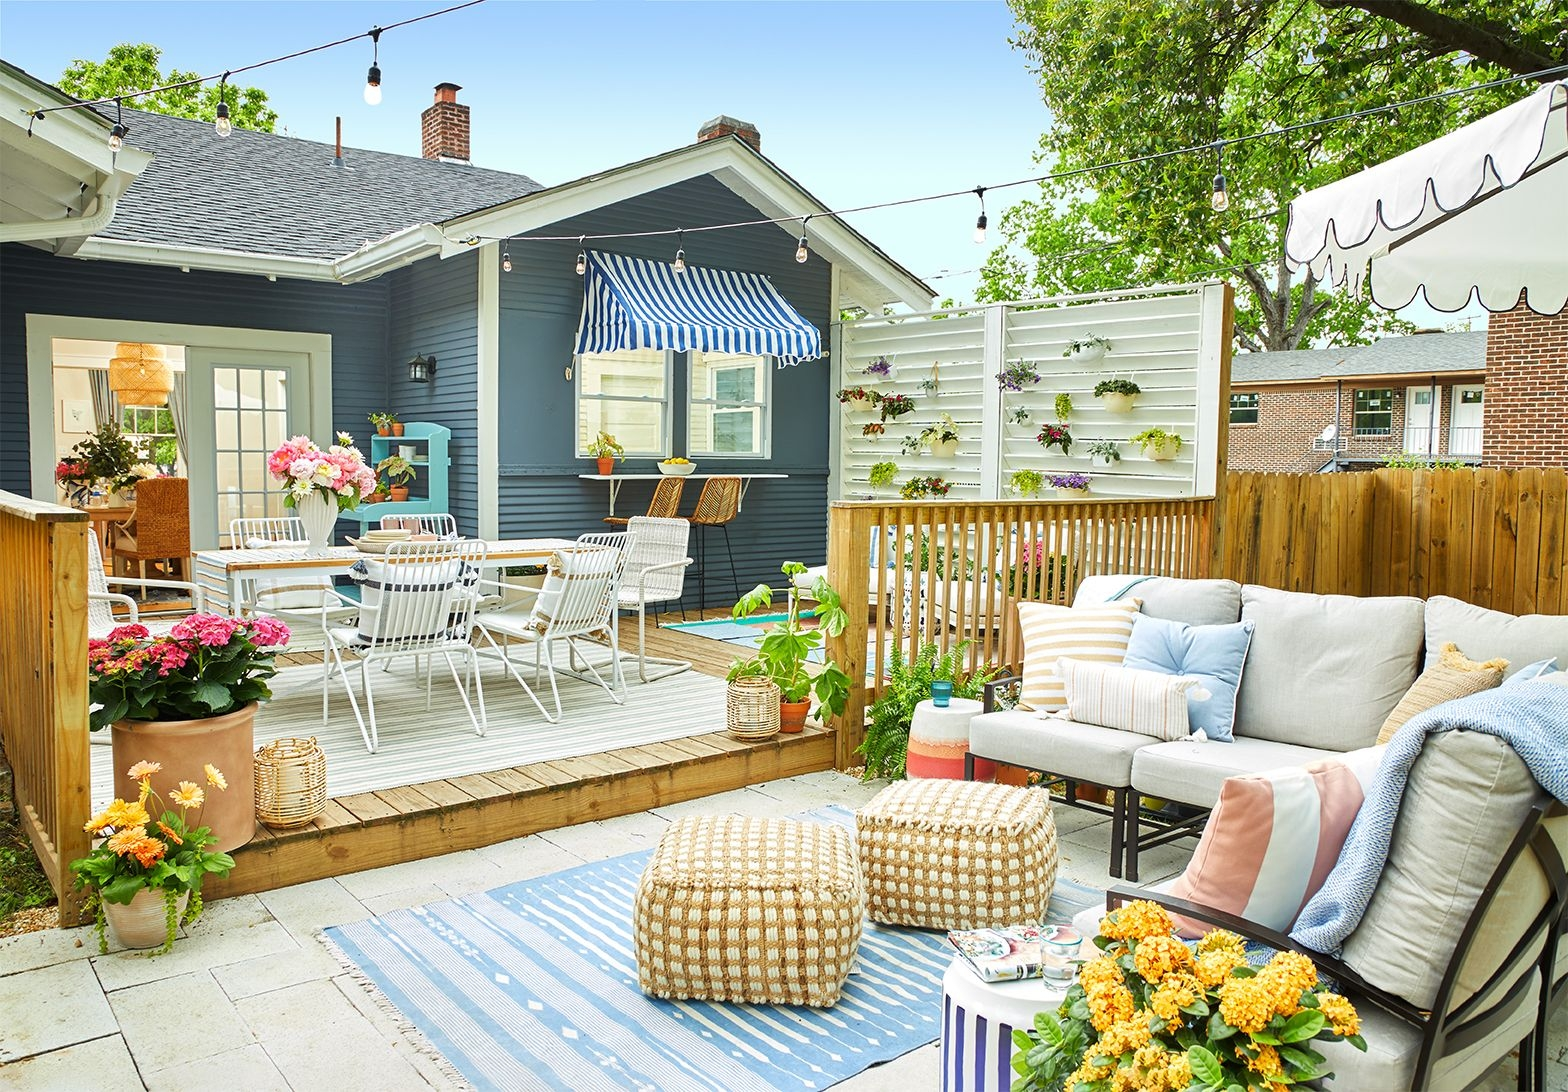 41 Best Patio And Porch Design Ideas Decorating Your Outdoor Space   Outside Stair Design For Small House   2 Story   Cement Stair   House Chennai   Residential   Stair Room